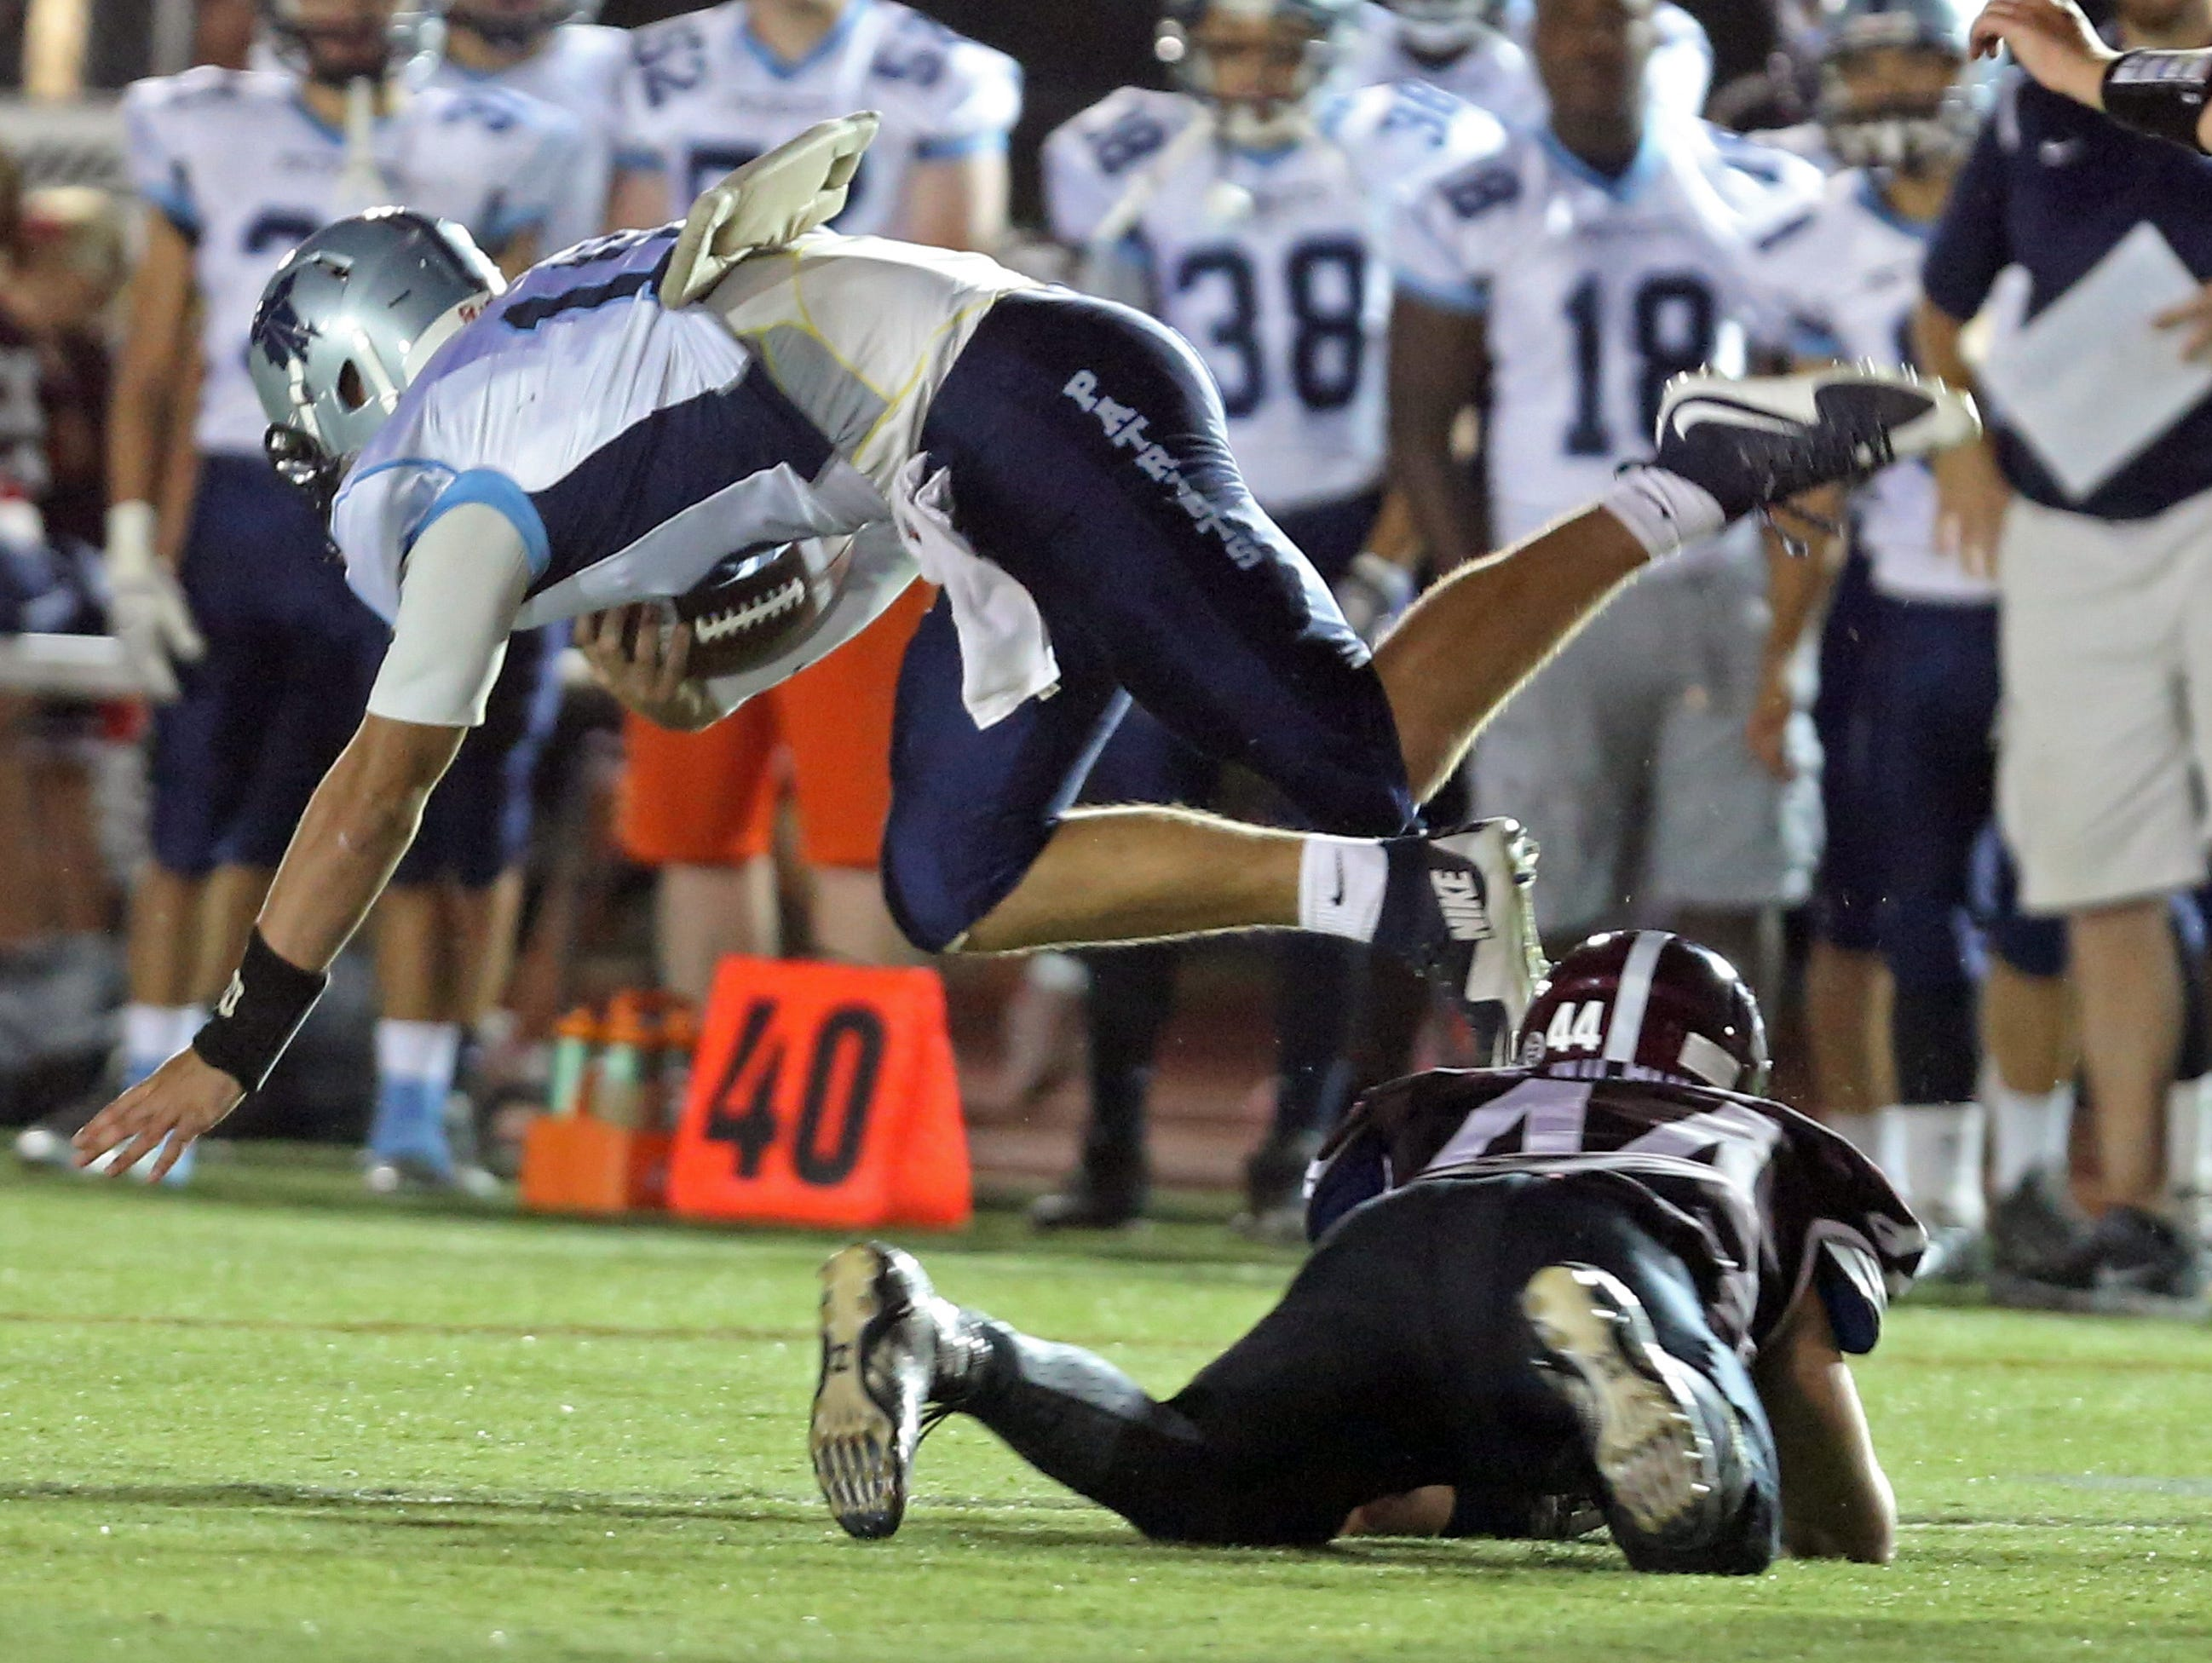 ]ohn Jay East Fishkill quarterback Ryan Schumacher flies over Scarsdale's Stephen Nicholas during a varsity football game at Scarsdale High School Sept. 25, 2015.